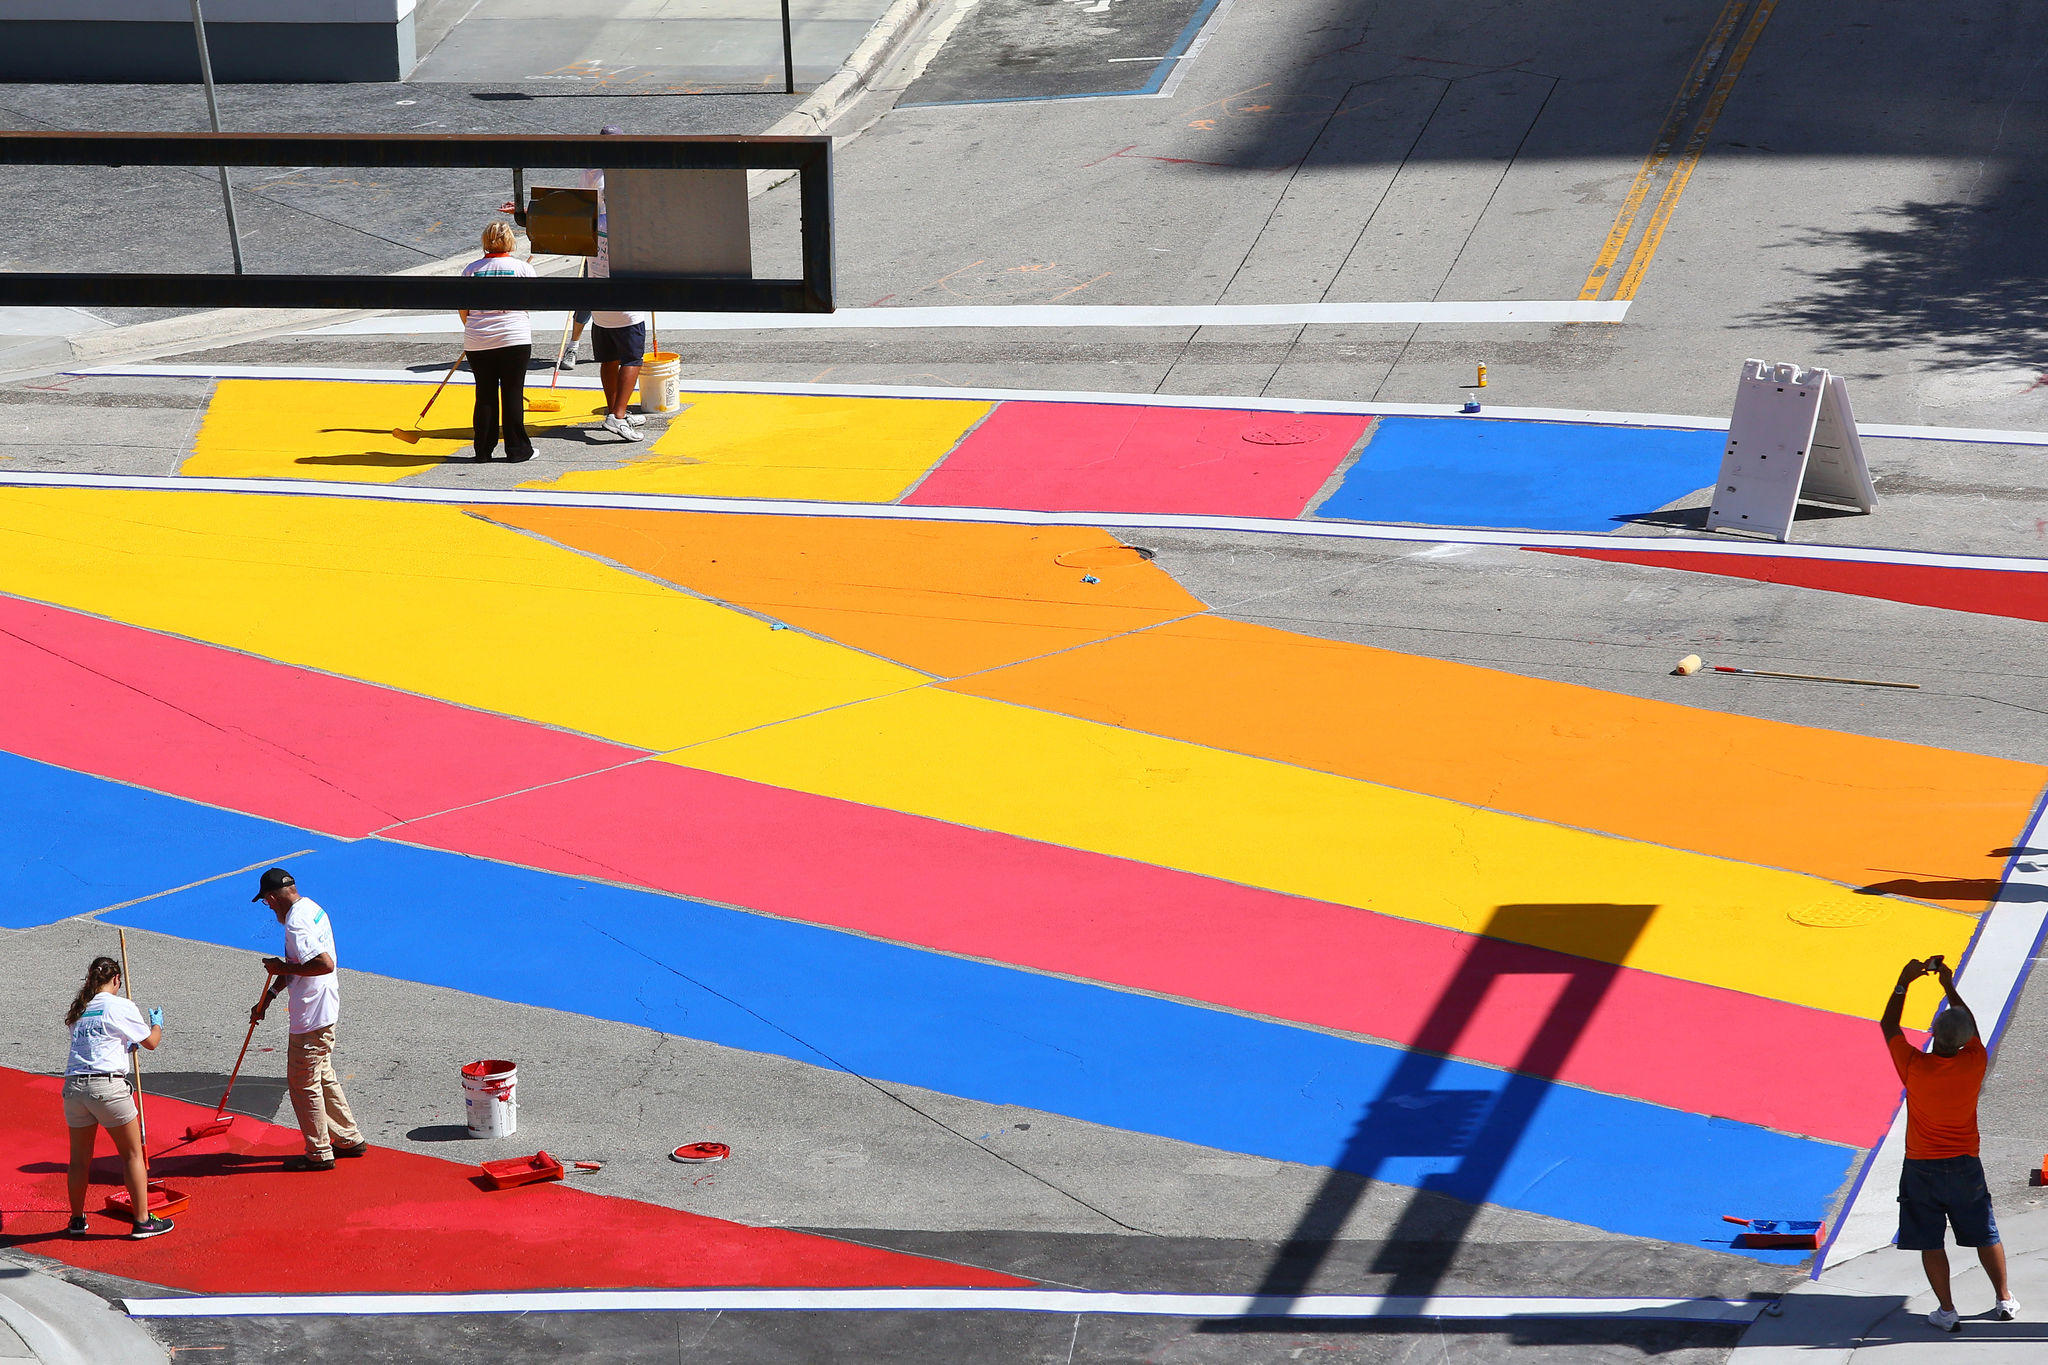 Volunteers paint over the intersection of Las Olas and SE 1st Avenue on Saturday with a colorful mural, a project by the city of Fort Lauderdale intended to add a splash of color to downtown and create a more pedestrian-friendly environment.